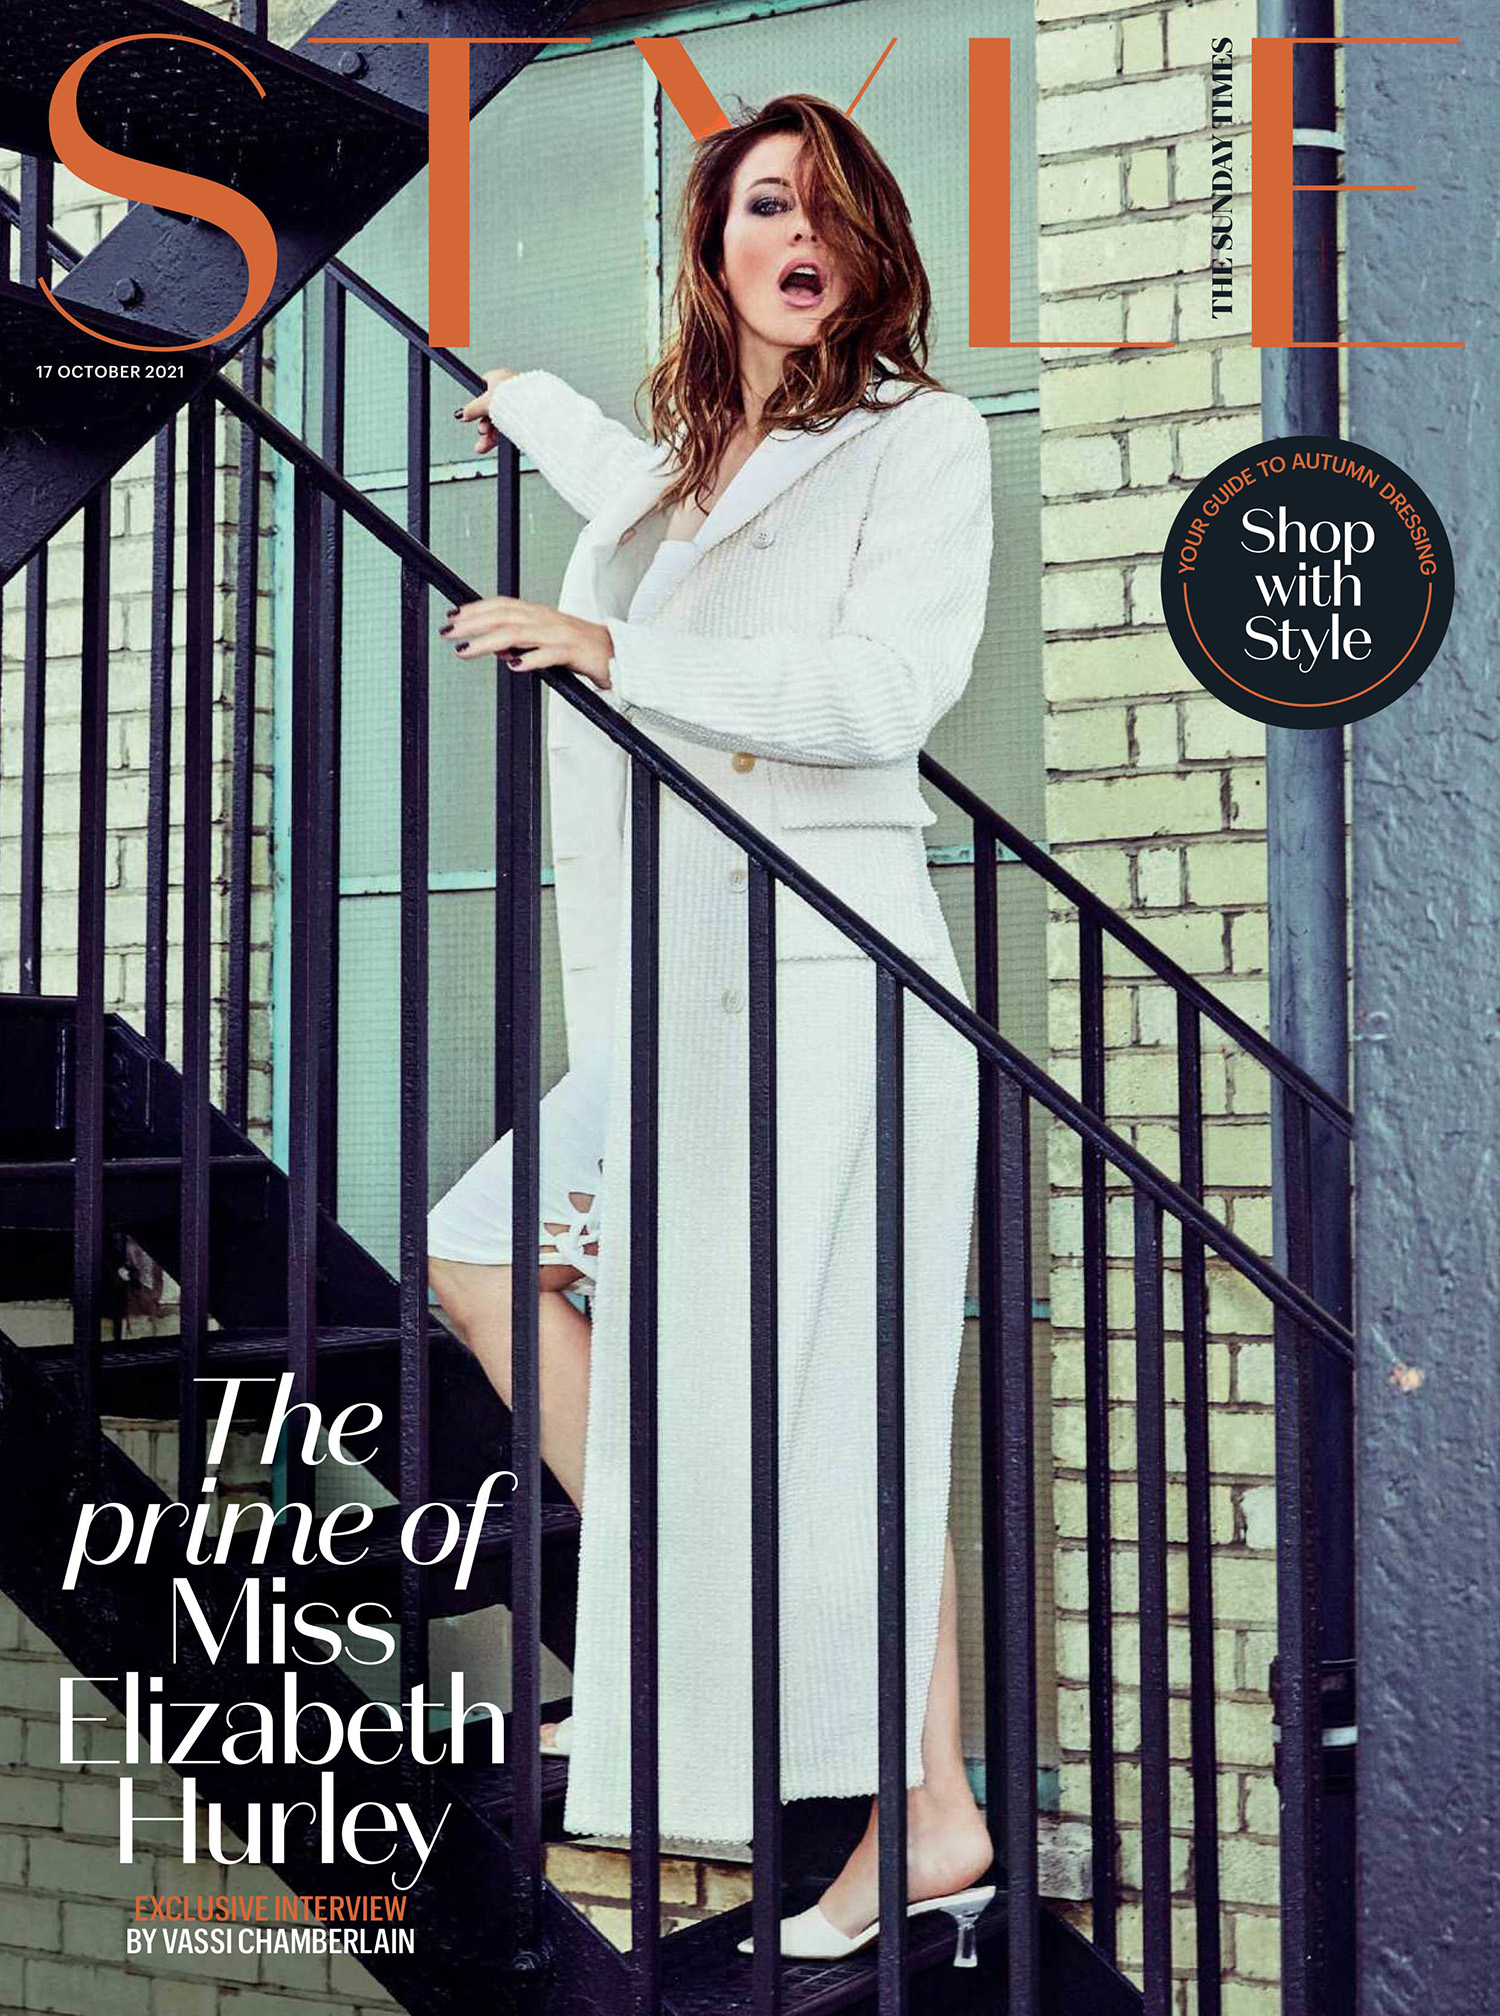 Elizabeth Hurley covers The Sunday Times Style October 17th, 2021 by Ellen von Unwerth